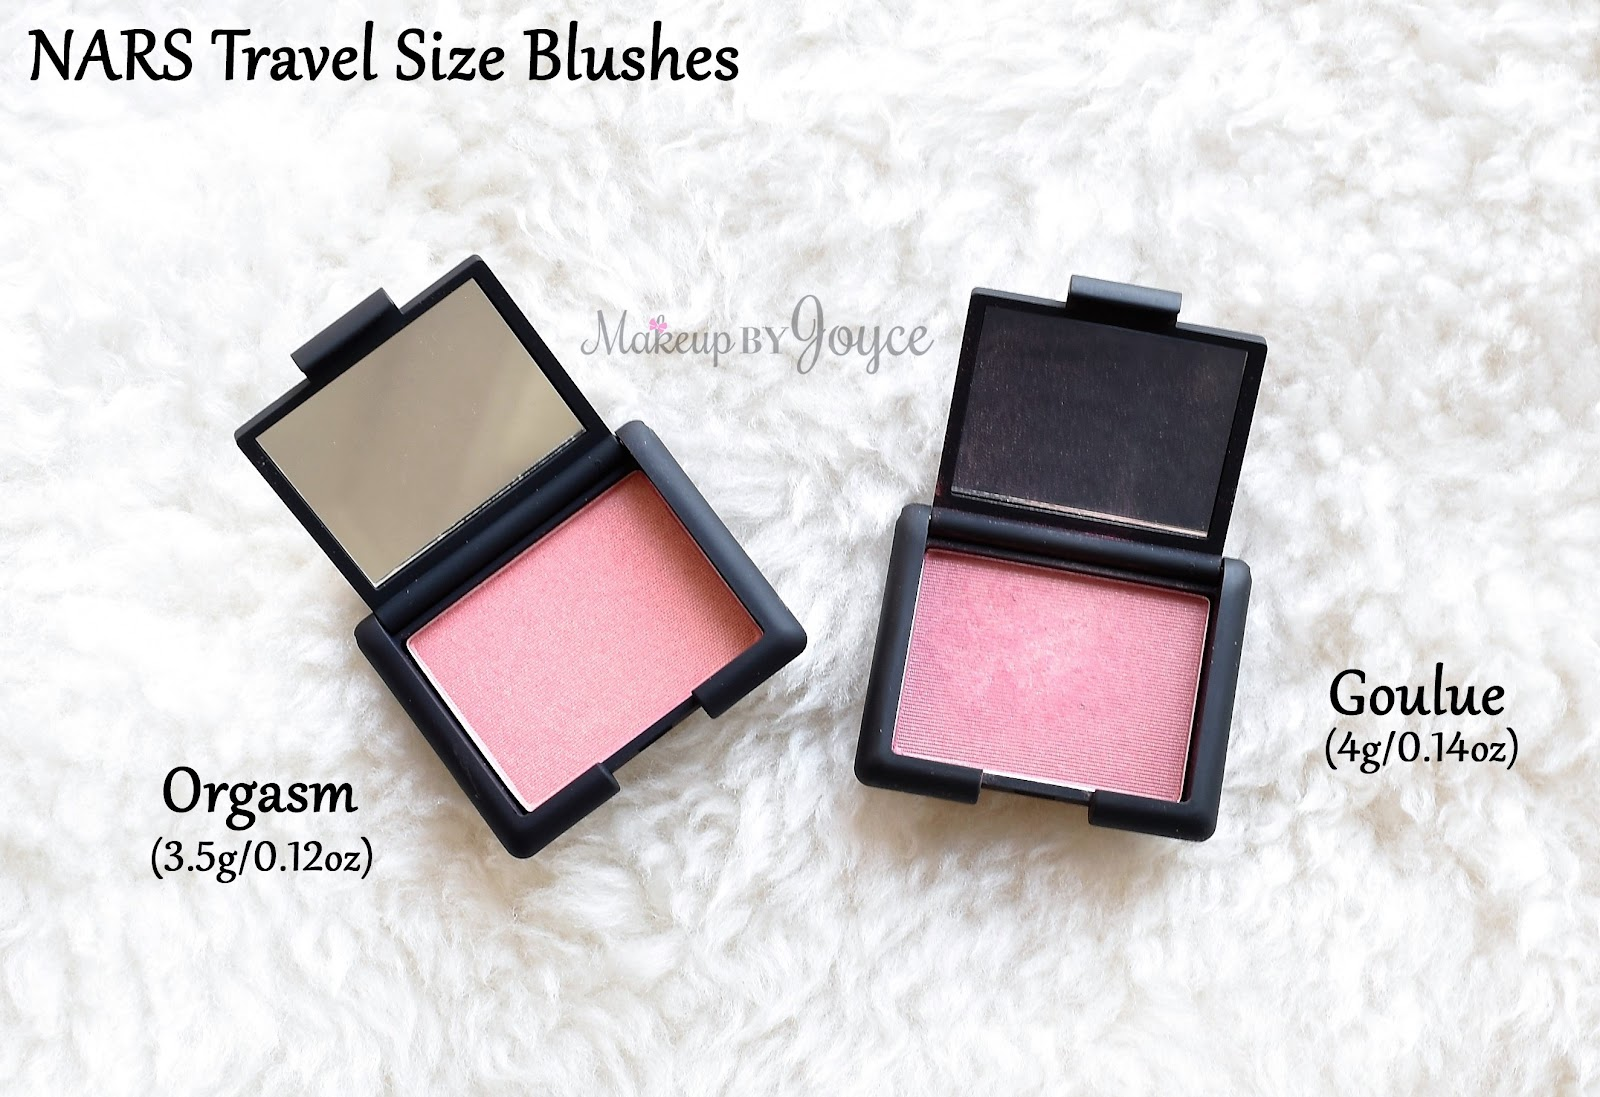 makeupbyjoyce swatches review nars long hot summer eyeshadow palette orgasm blush. Black Bedroom Furniture Sets. Home Design Ideas